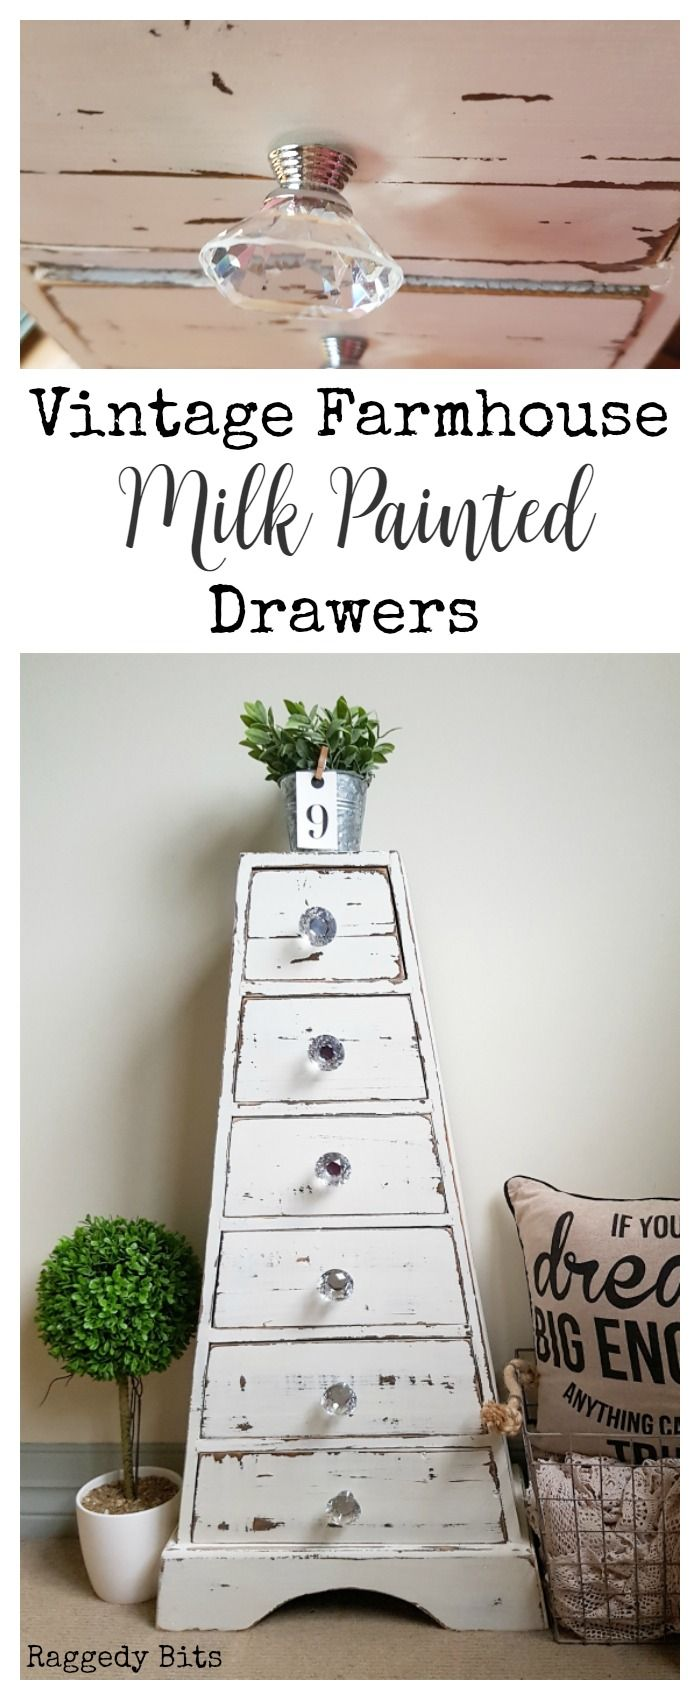 A friend was going to throw these drawers out but luckily thought of me and that I might be able to do something with them. So with some Miss Mustard Seed Milk Paint - Farmhouse White and my paintbrush I gave them a fun new look | Vintage Farmhouse Milk Painted Drawers | Full tutorial | www.raggedy-bits.com